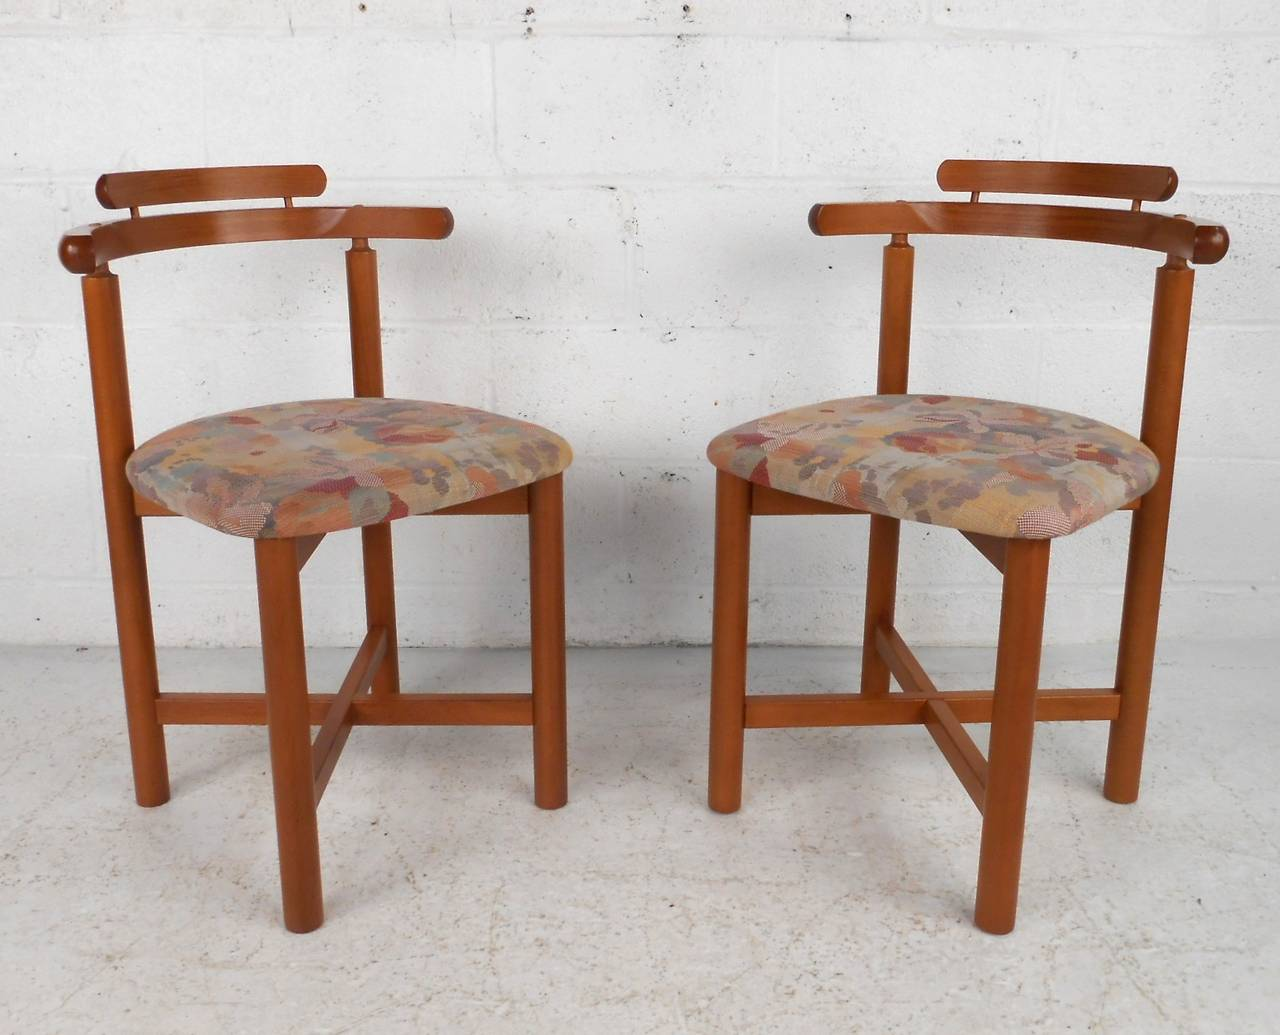 Danish Modern Dining Chairs For Sale Set Of Mid Century Modern Style Danish Teak Dining Chairs By Gangso Mobler